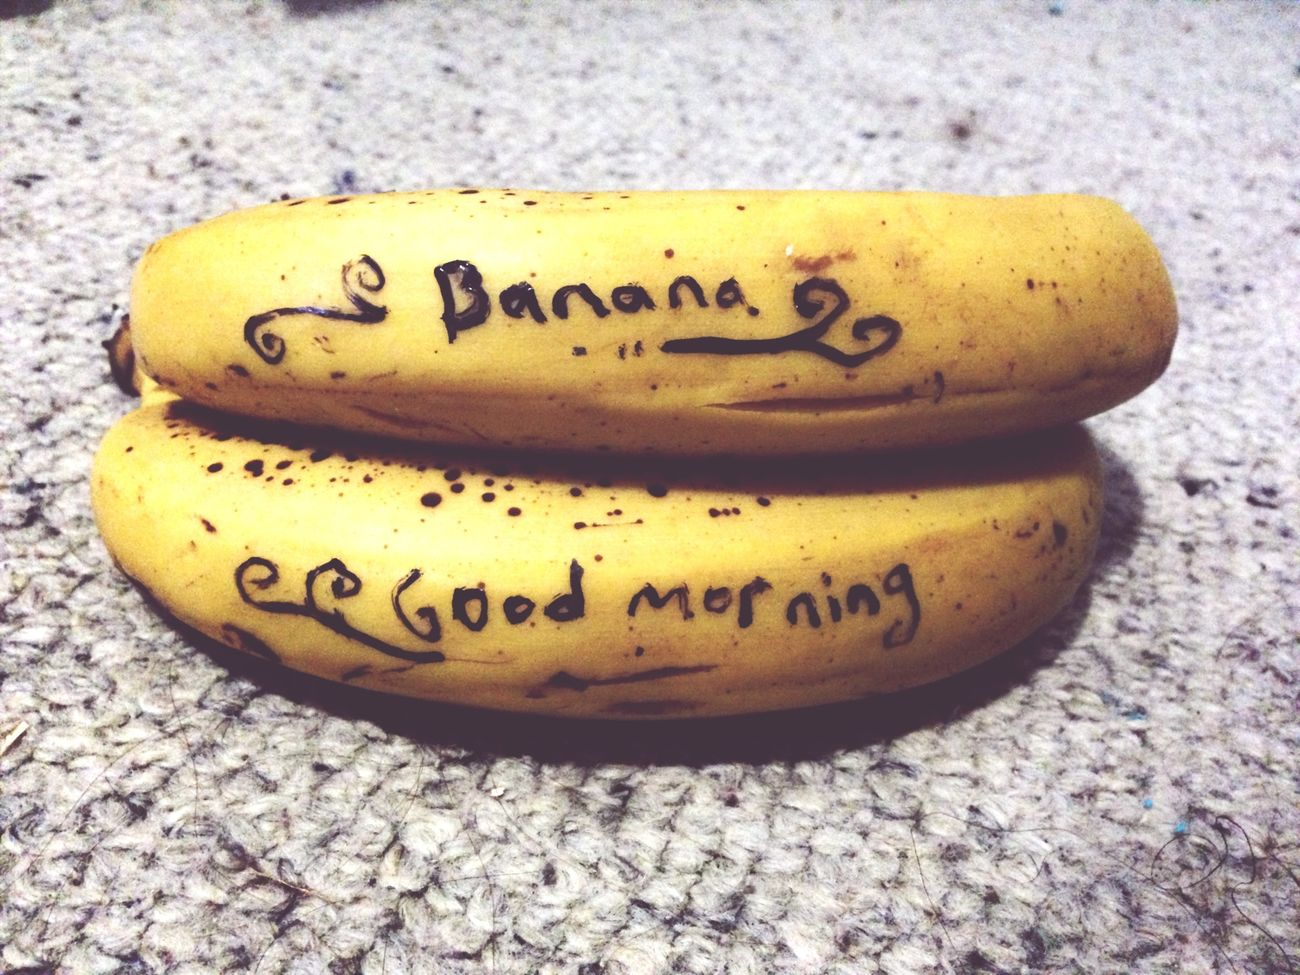 Goodmorning Hello World Banana for Breakfast another hot day! What r u guys up to today?